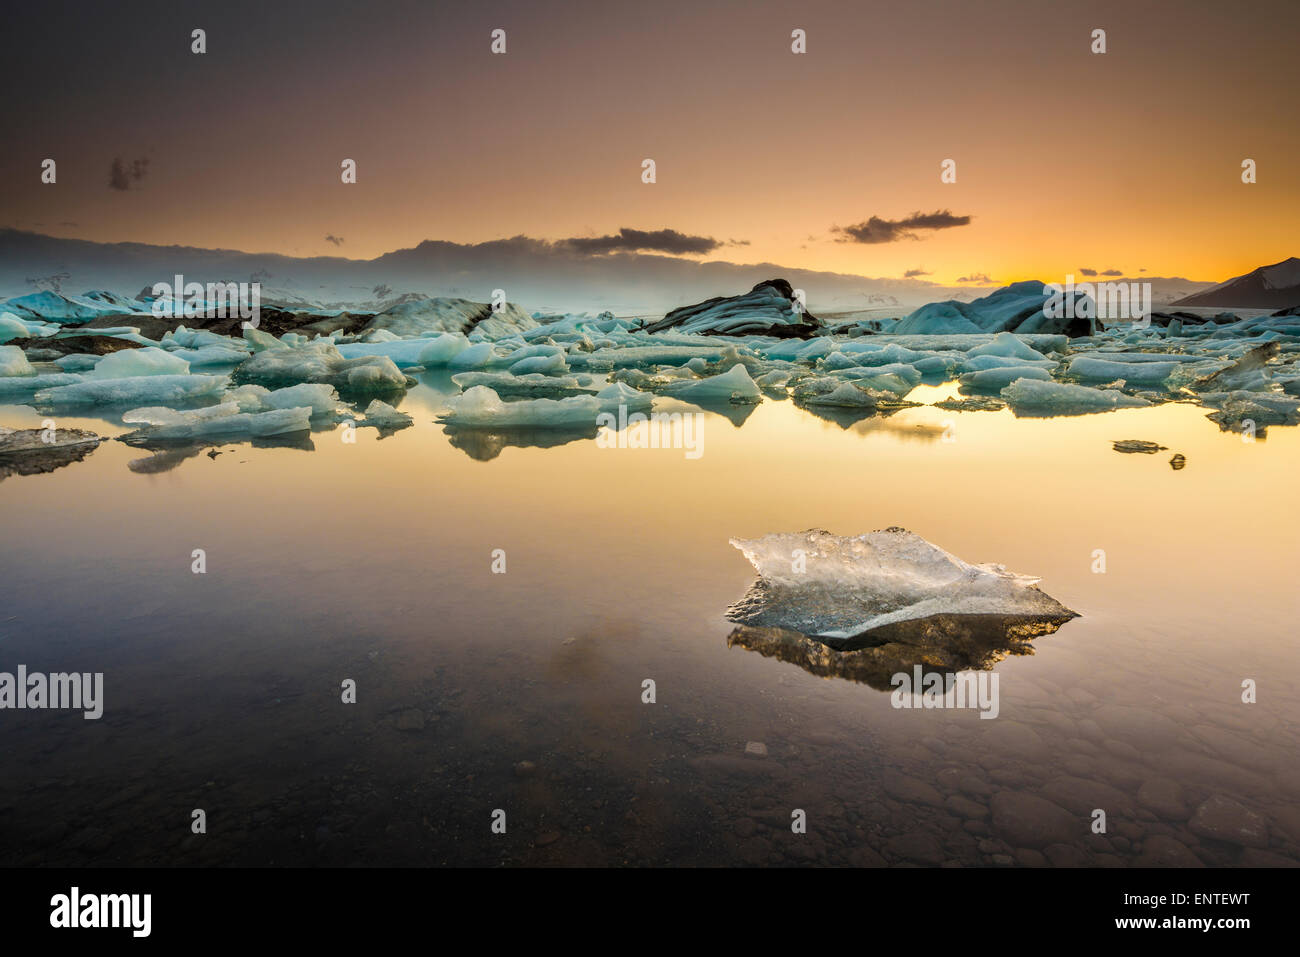 Iceland landscape - Sunset at Jokulsarlon Lagoon, Vatnajokull National Park, Iceland at sunset - Stock Image